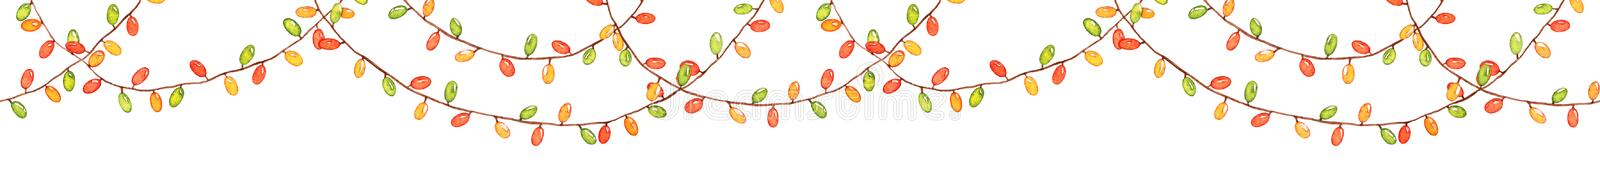 Seamless pattern with watercolor garland royalty free illustration